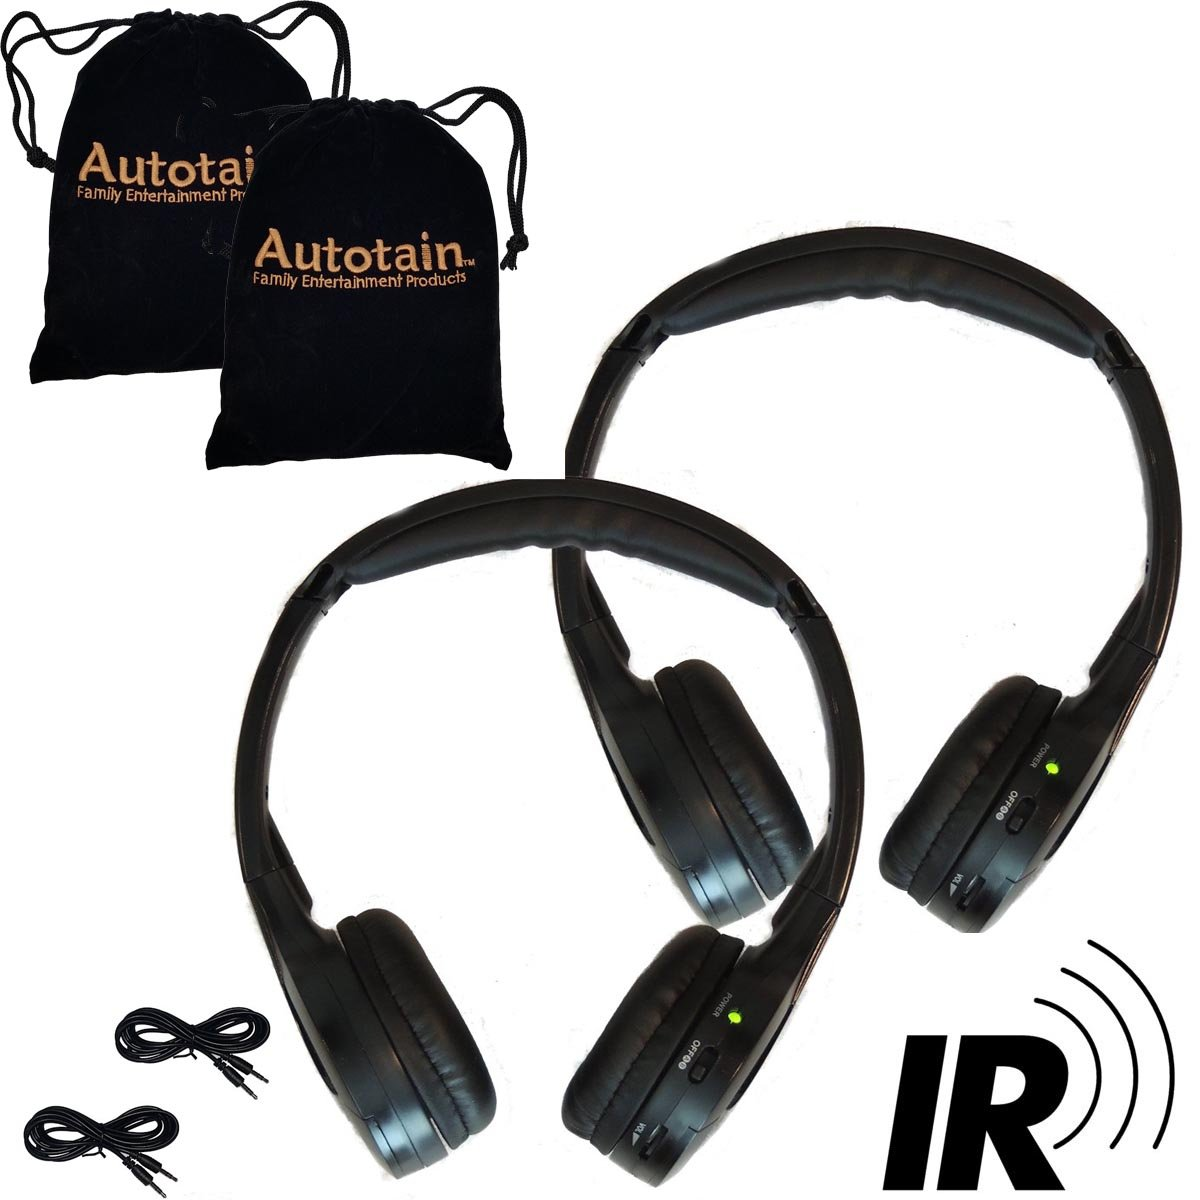 [2 Pack] 2 Channel KID SIZE Universal IR Infrared Wireless or Wired Car Headphones Autotain Cloud Autotain-Cloud-2-Pack